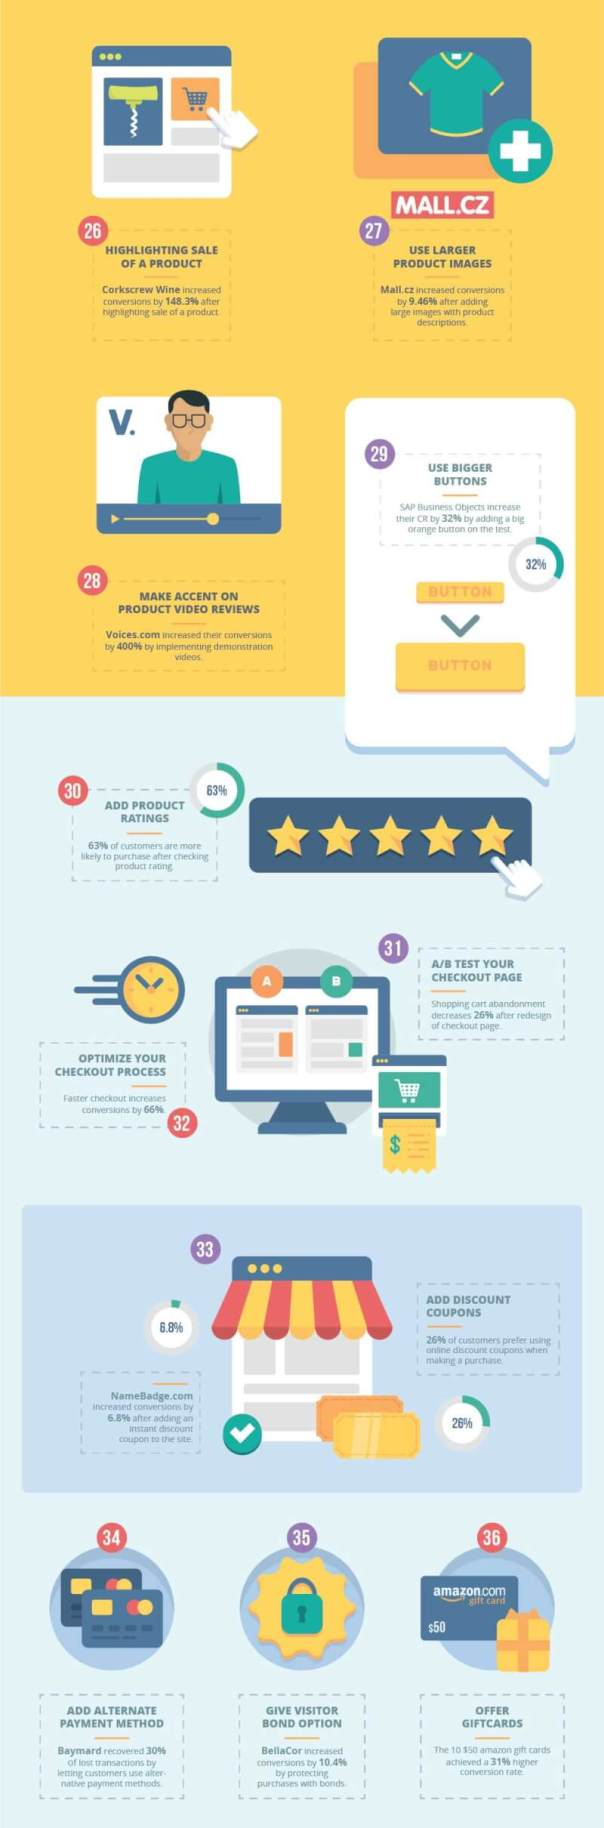 infographic-How-to-Optimize-your-Site-for-Conversions_03